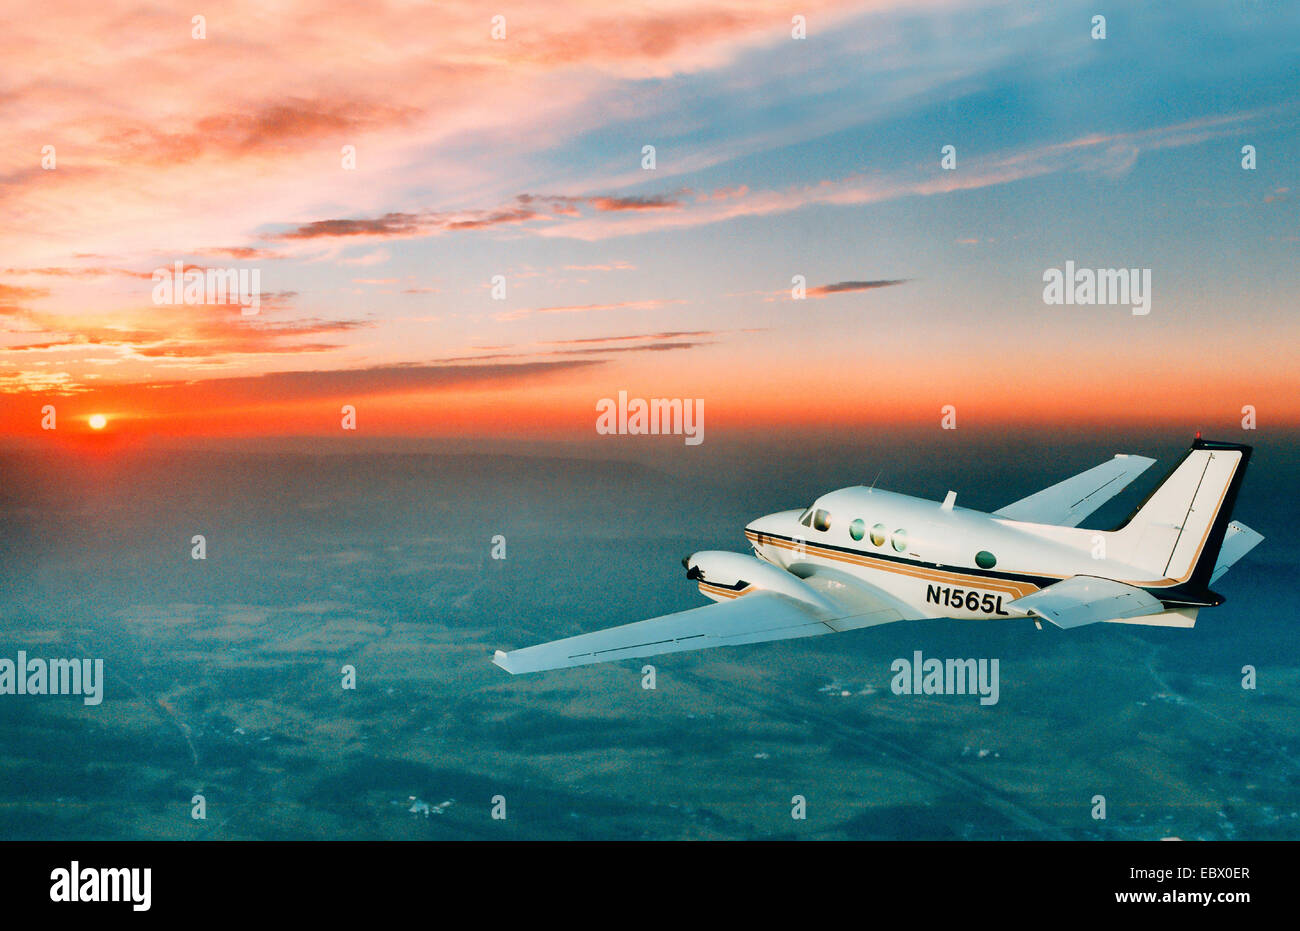 a small twin engine commuter plane flying into the beautiful orange sunset - Stock Image